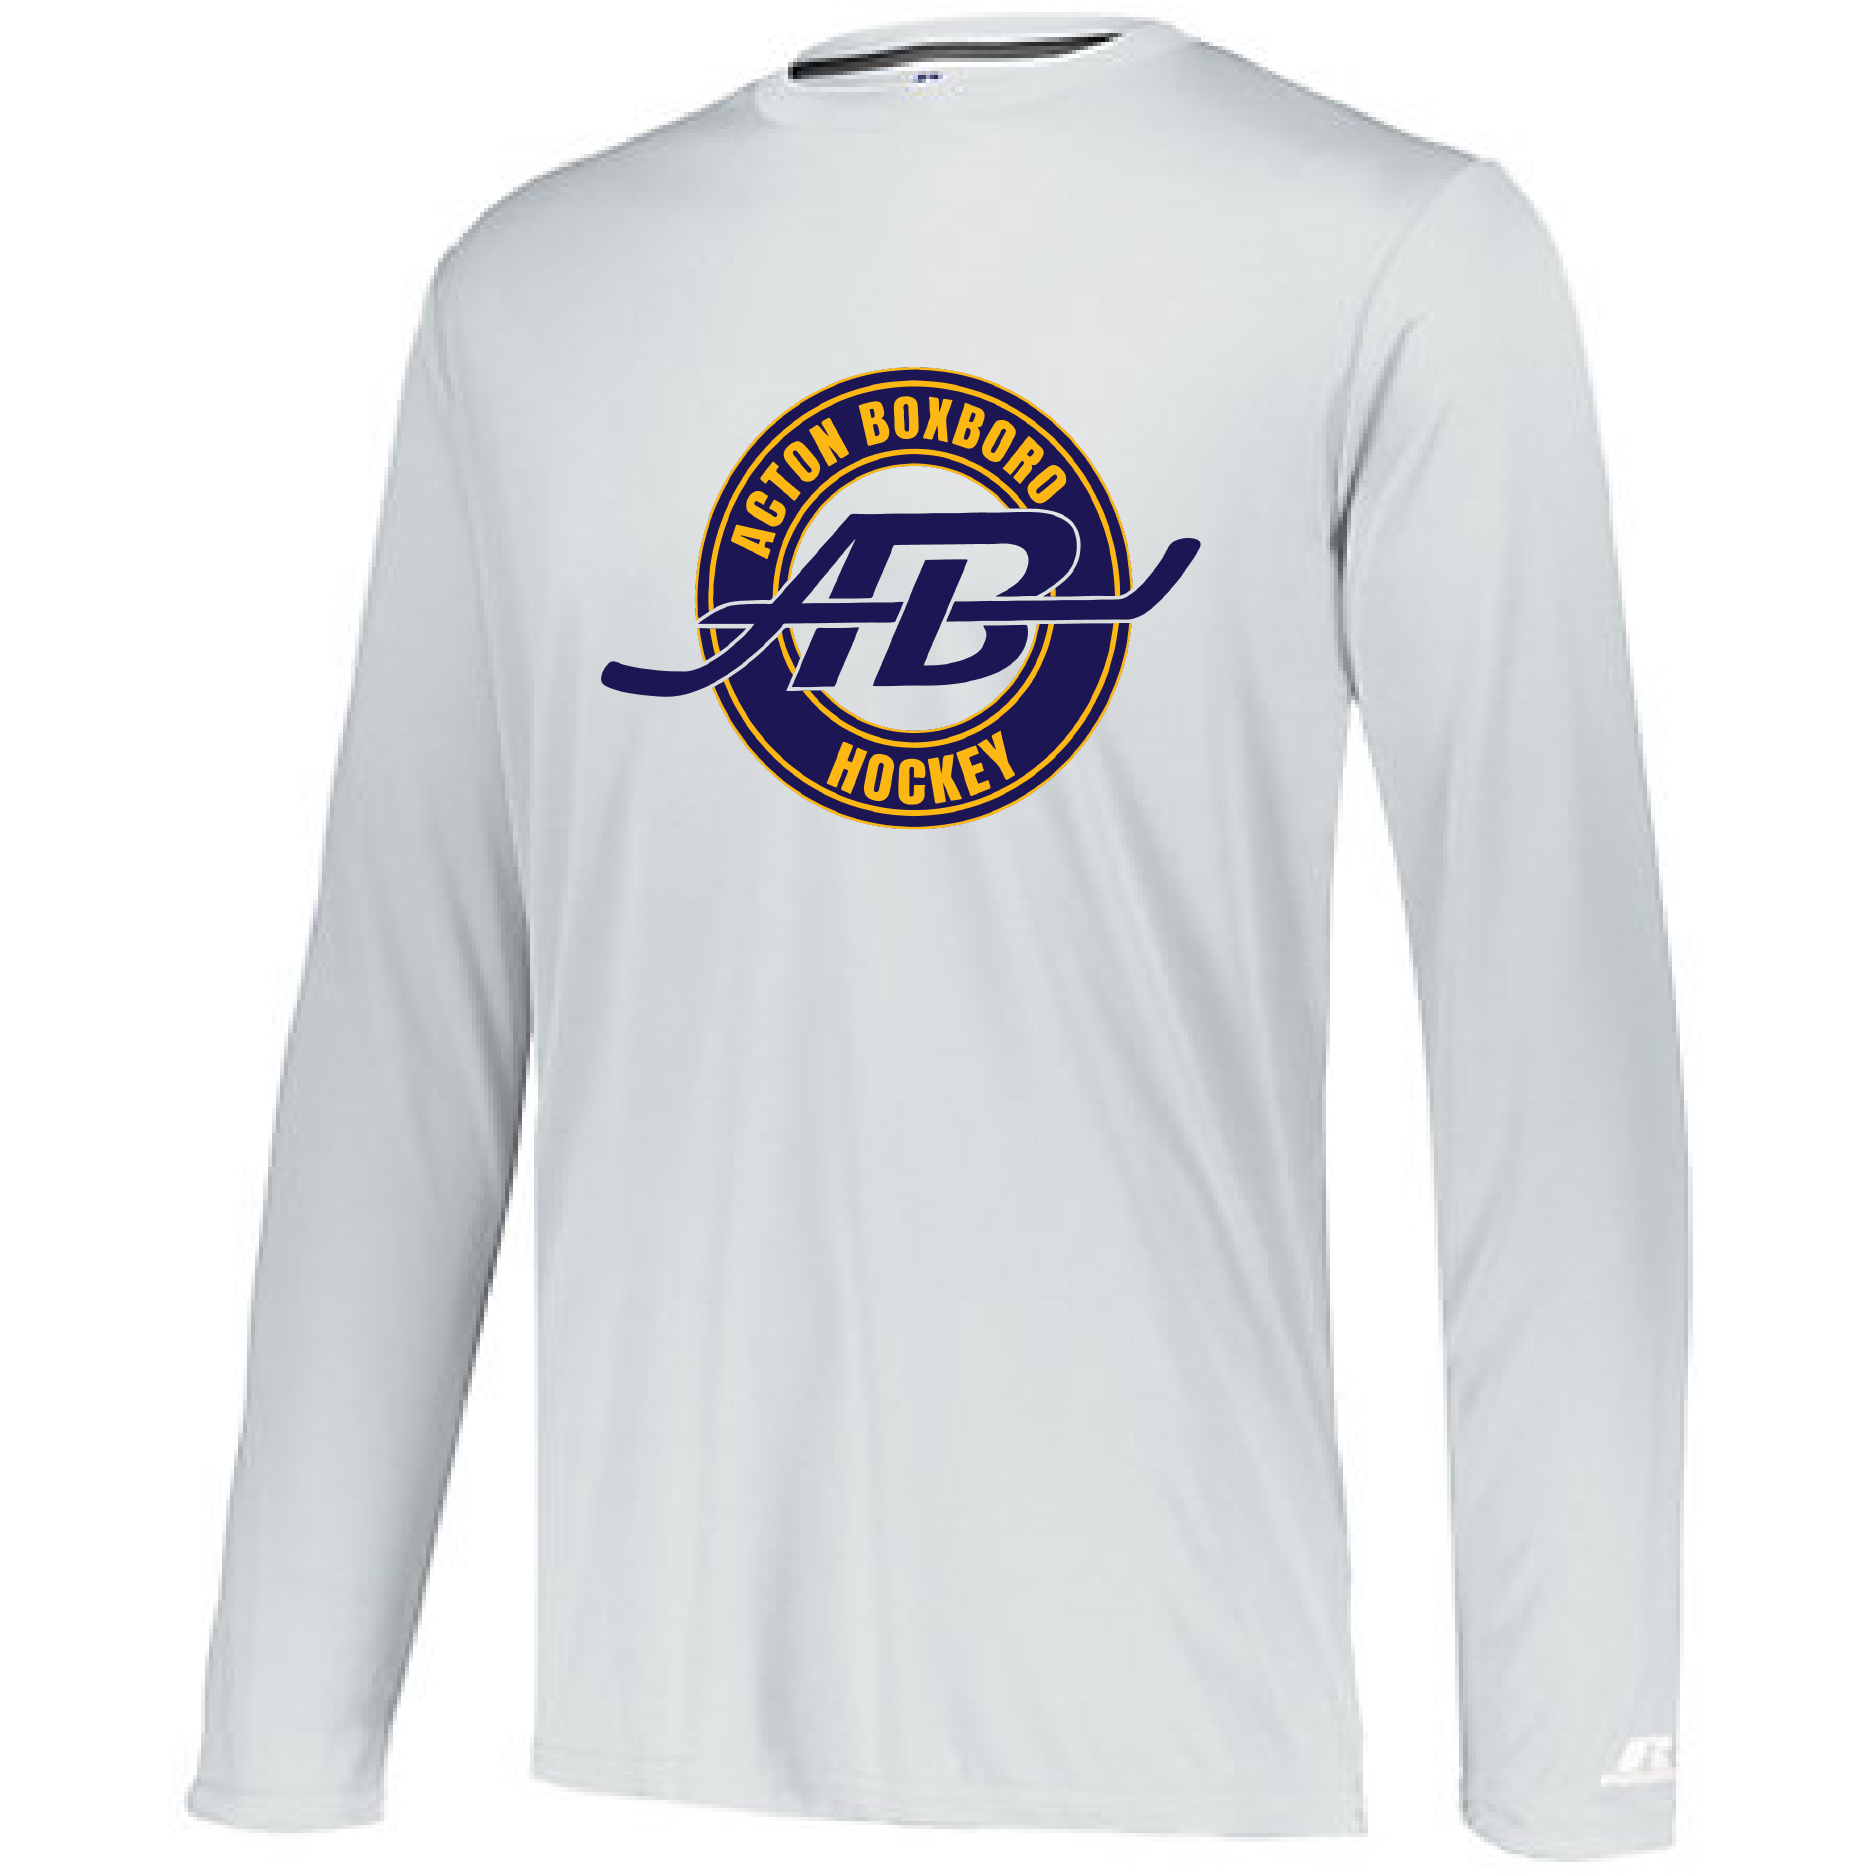 AB Hockey Performance Long Sleeve